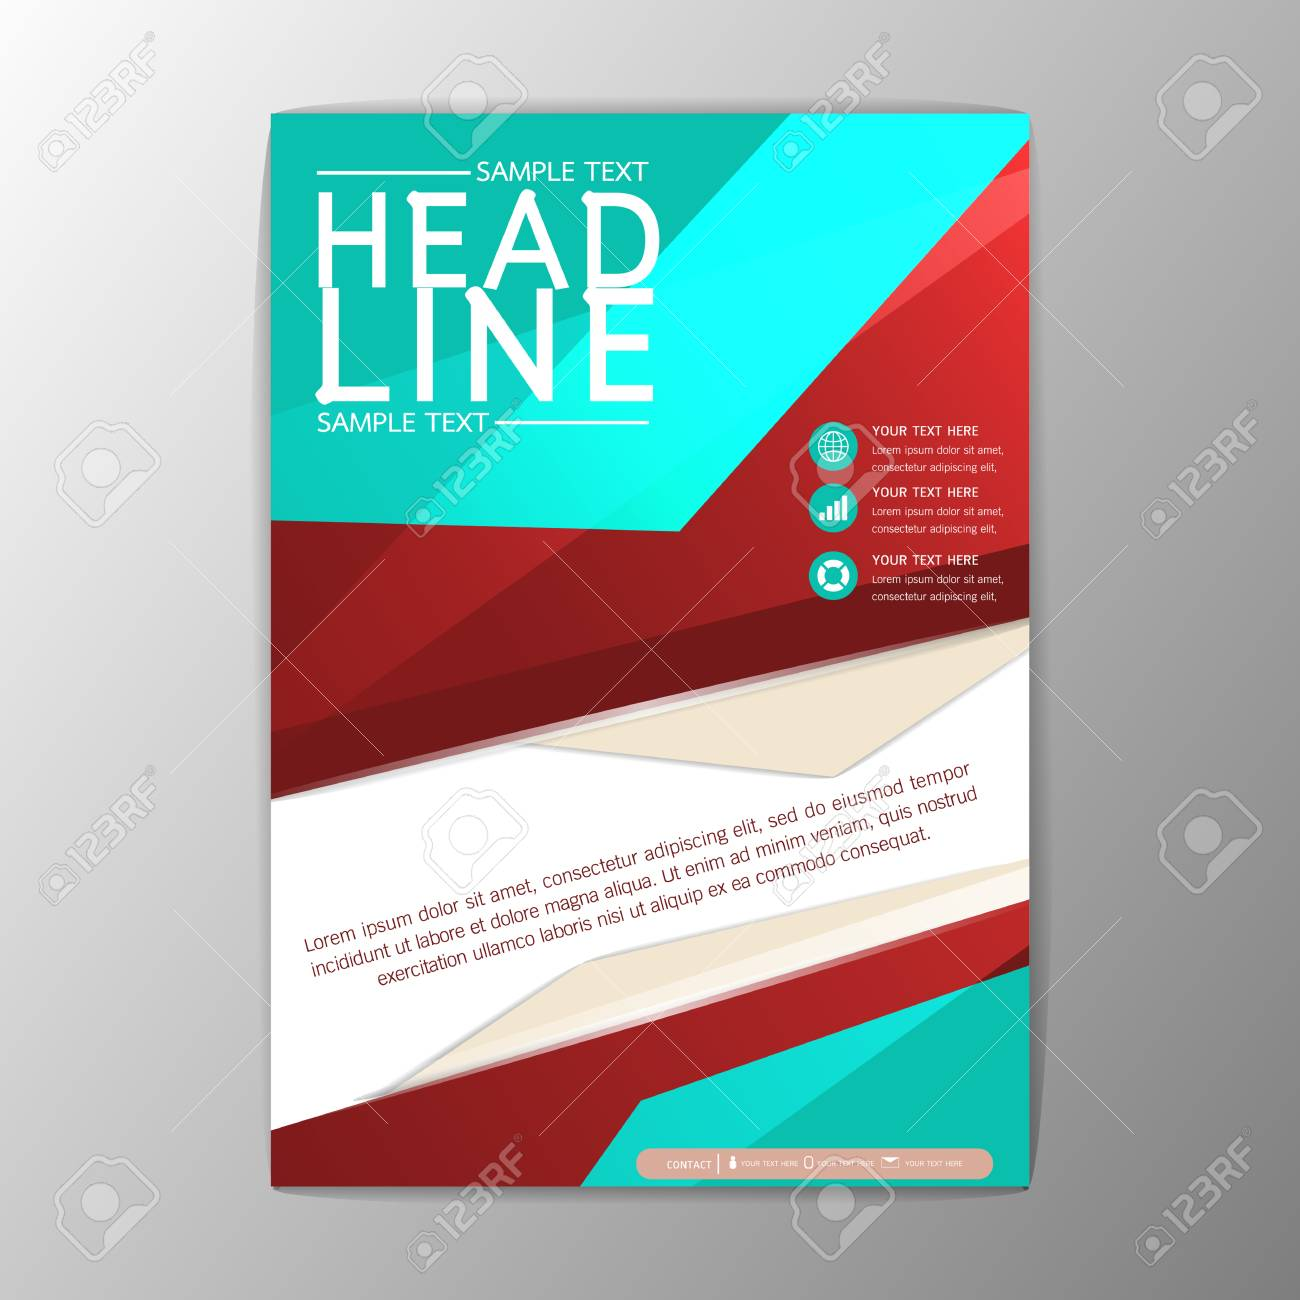 Modernes Design, Magazin, Broschüre, Flyer, Business-Template ...